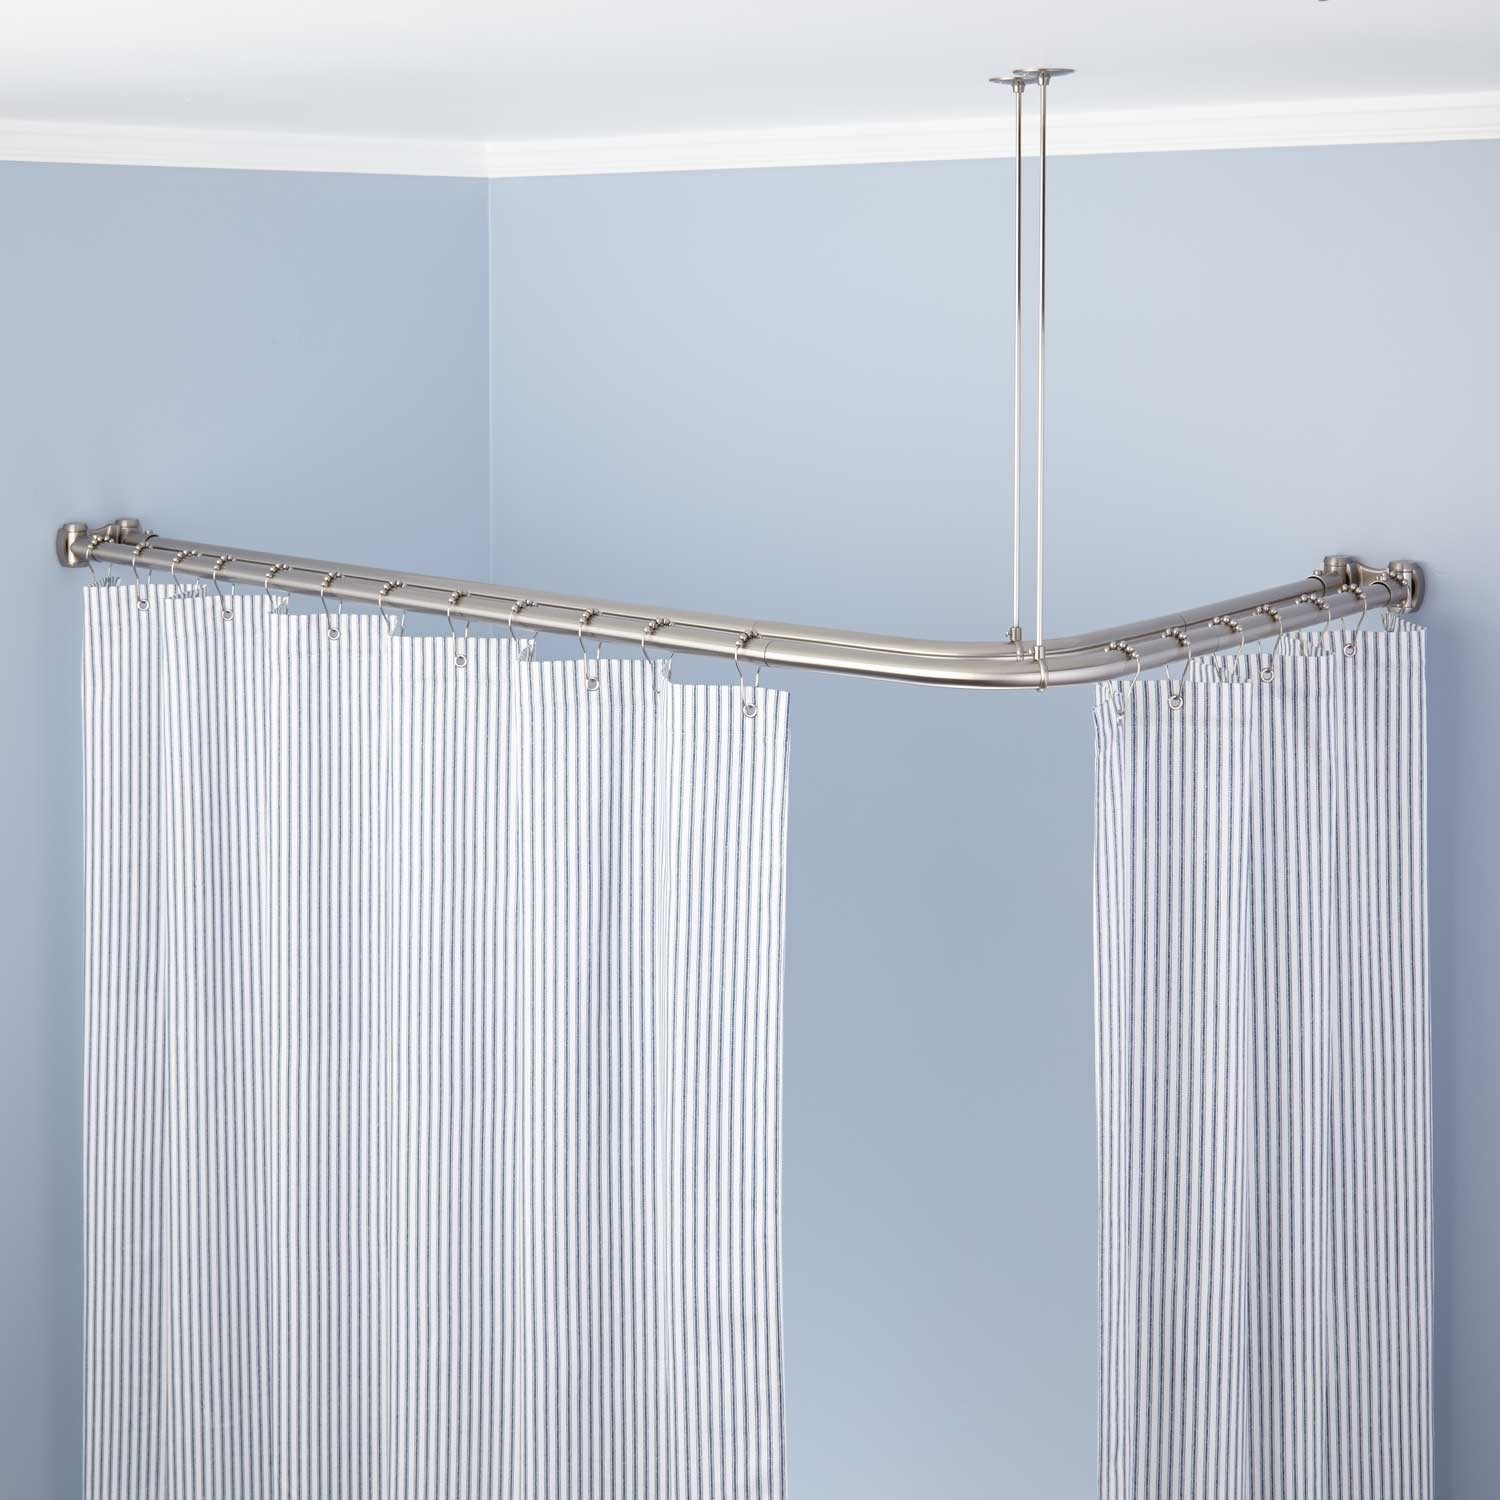 Shower Curtain Rods Signature Hardware Pertaining To Deep Curtain Rods (View 10 of 25)